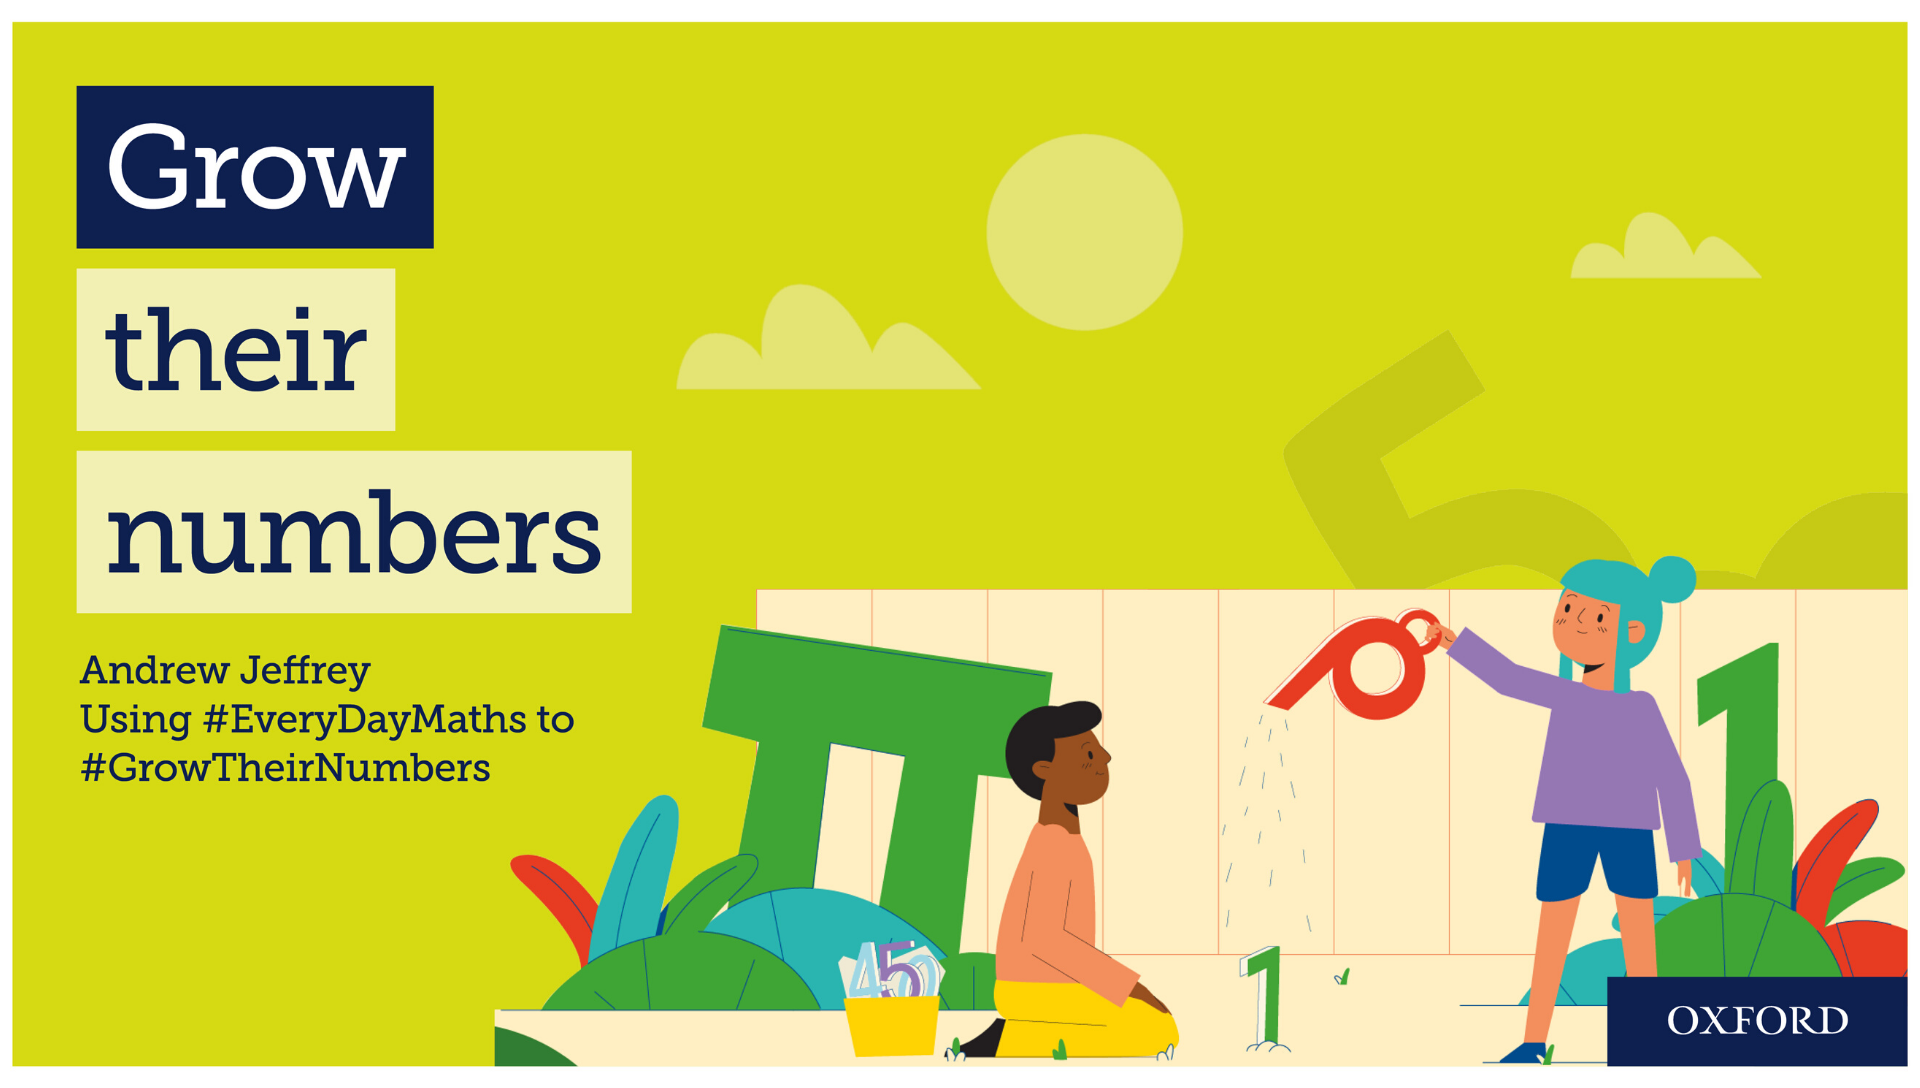 Andrew Jeffrey uses #EverydayMaths to #GrowTheirNumbers